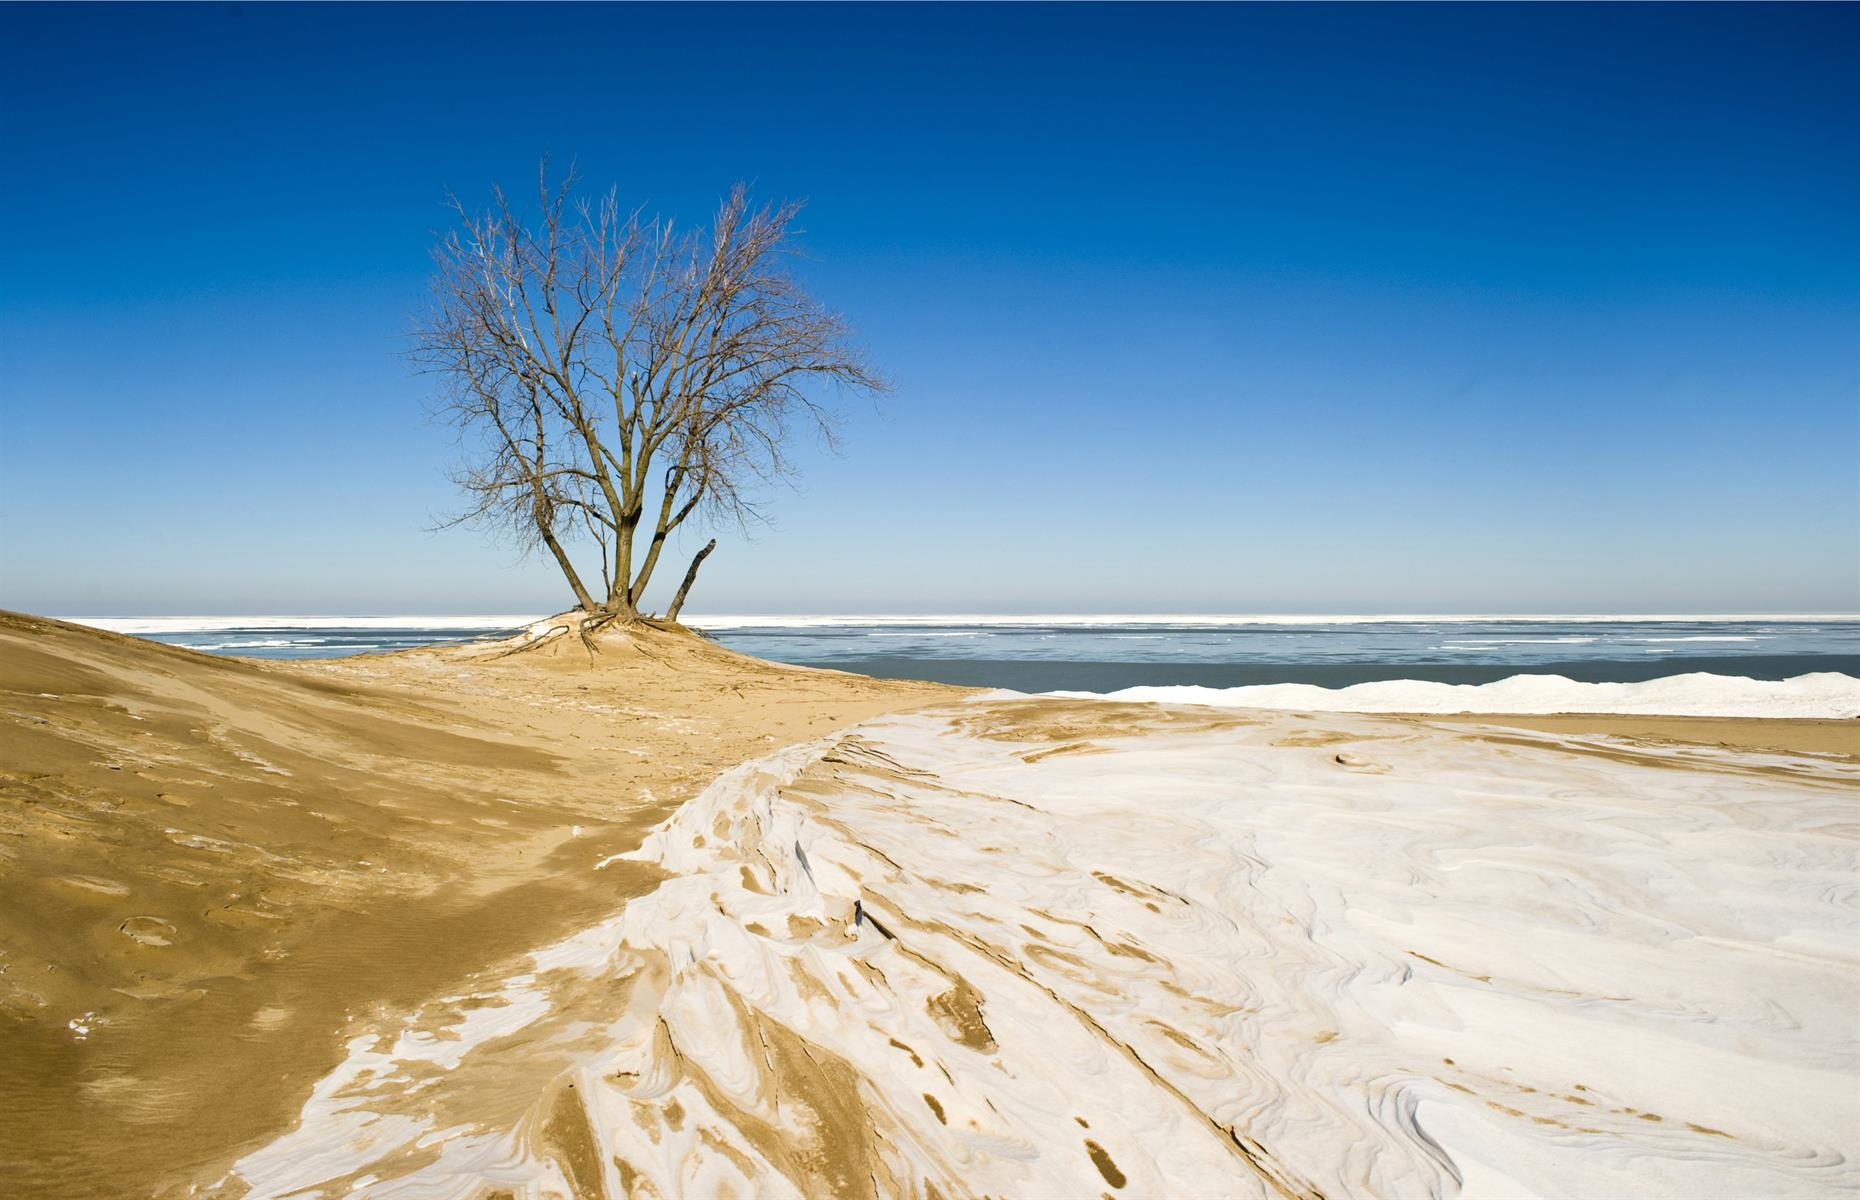 Slide 83 of 100: One of the USA's newest national parks, Indiana Dunes was designated in 2019. The park spreads over 15,000 acres encompassing, as its name suggests, endless dunes, some rising more than 100 feet (30m). But there's more than just sandy mountains in this preserve. Marshes, swamps, prairies and oak savannah come together to make one of the USA's most diverse ecosystems, home to species from deer to coyotes.